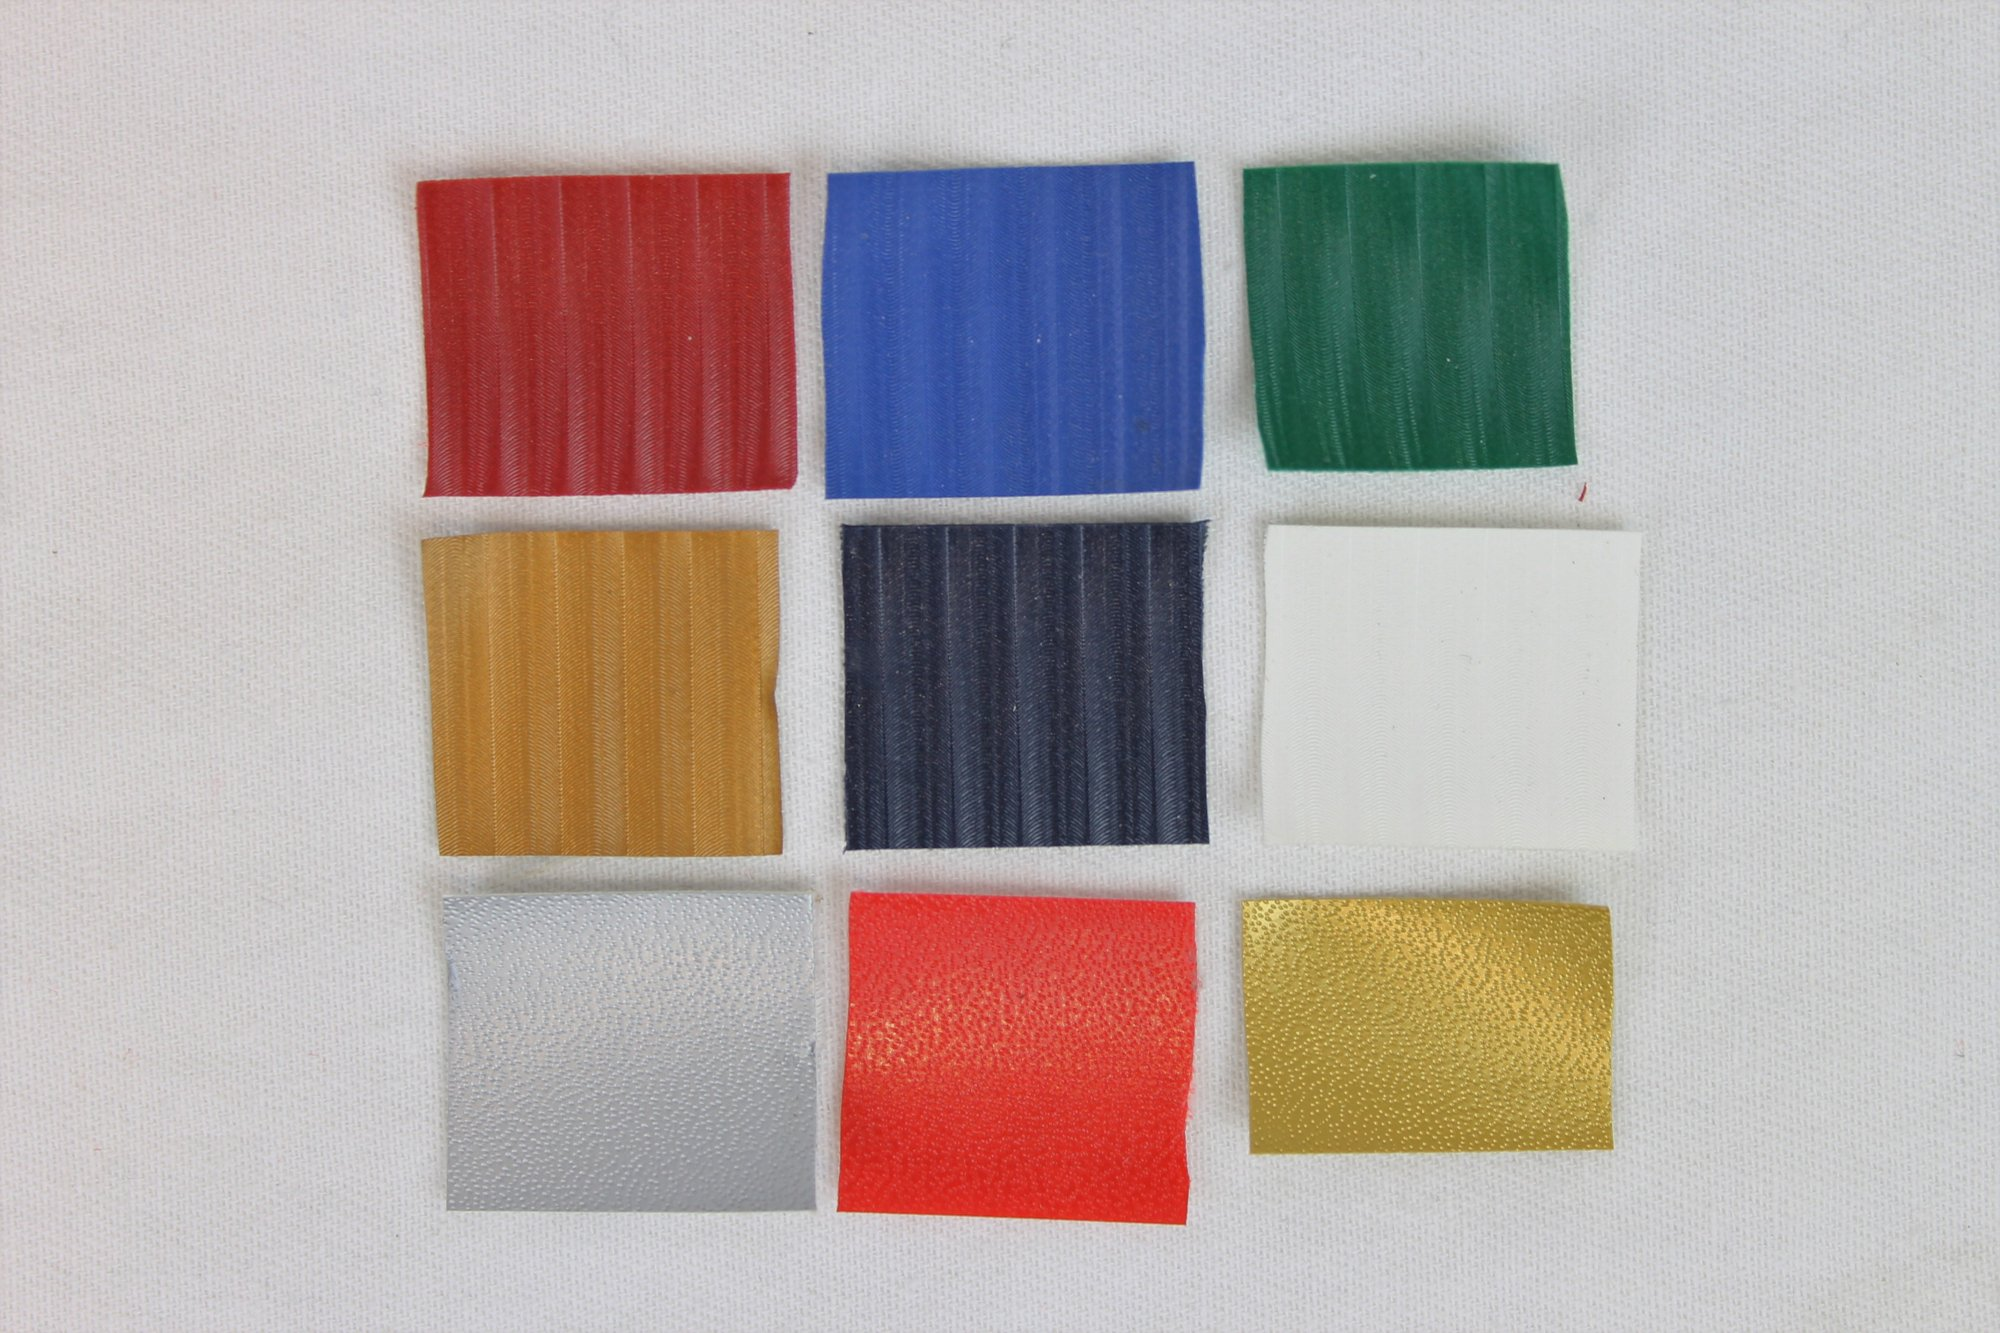 New Accordion Bellows Tape One Yard (36) Assorted Colors and Textures